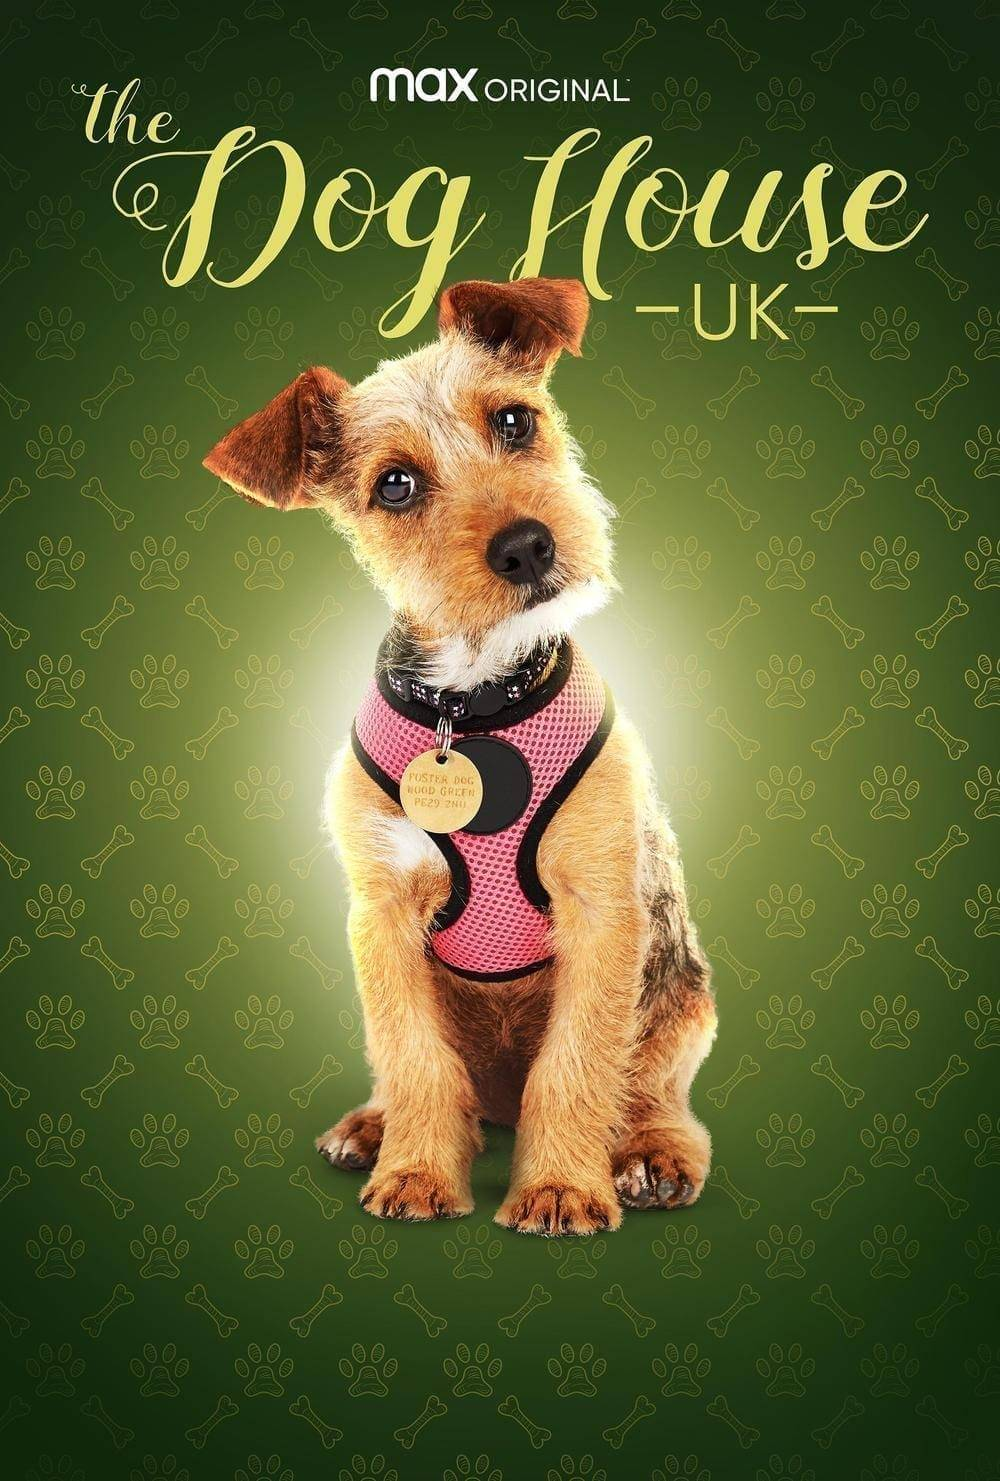 HBO Max Debuts THE DOG HOUSE: UK